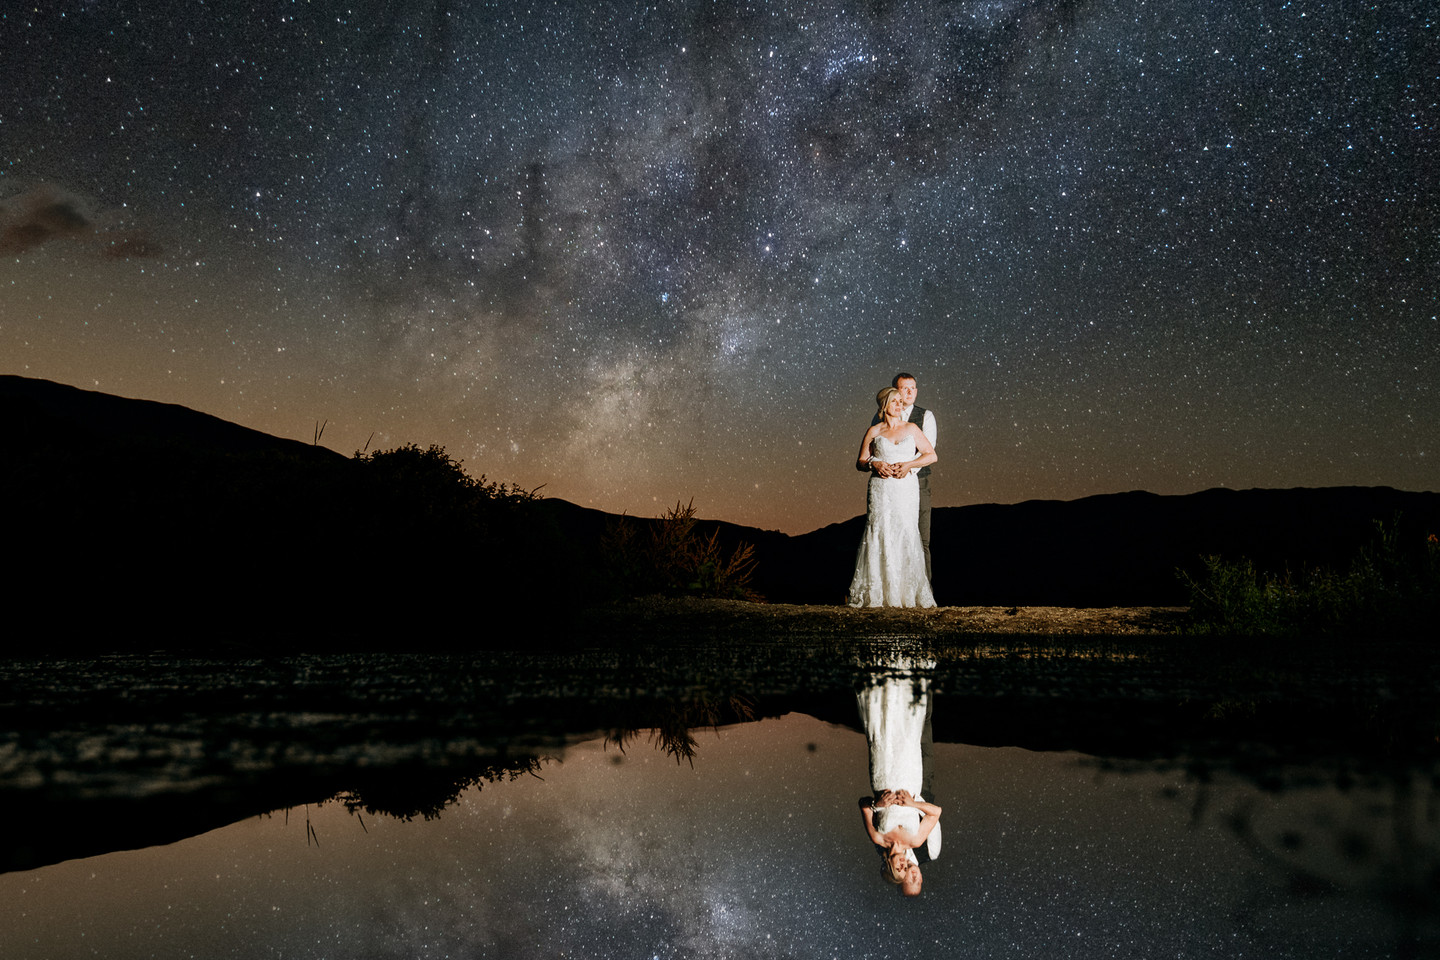 Lake-Distict-Wedding-Photography-James-H